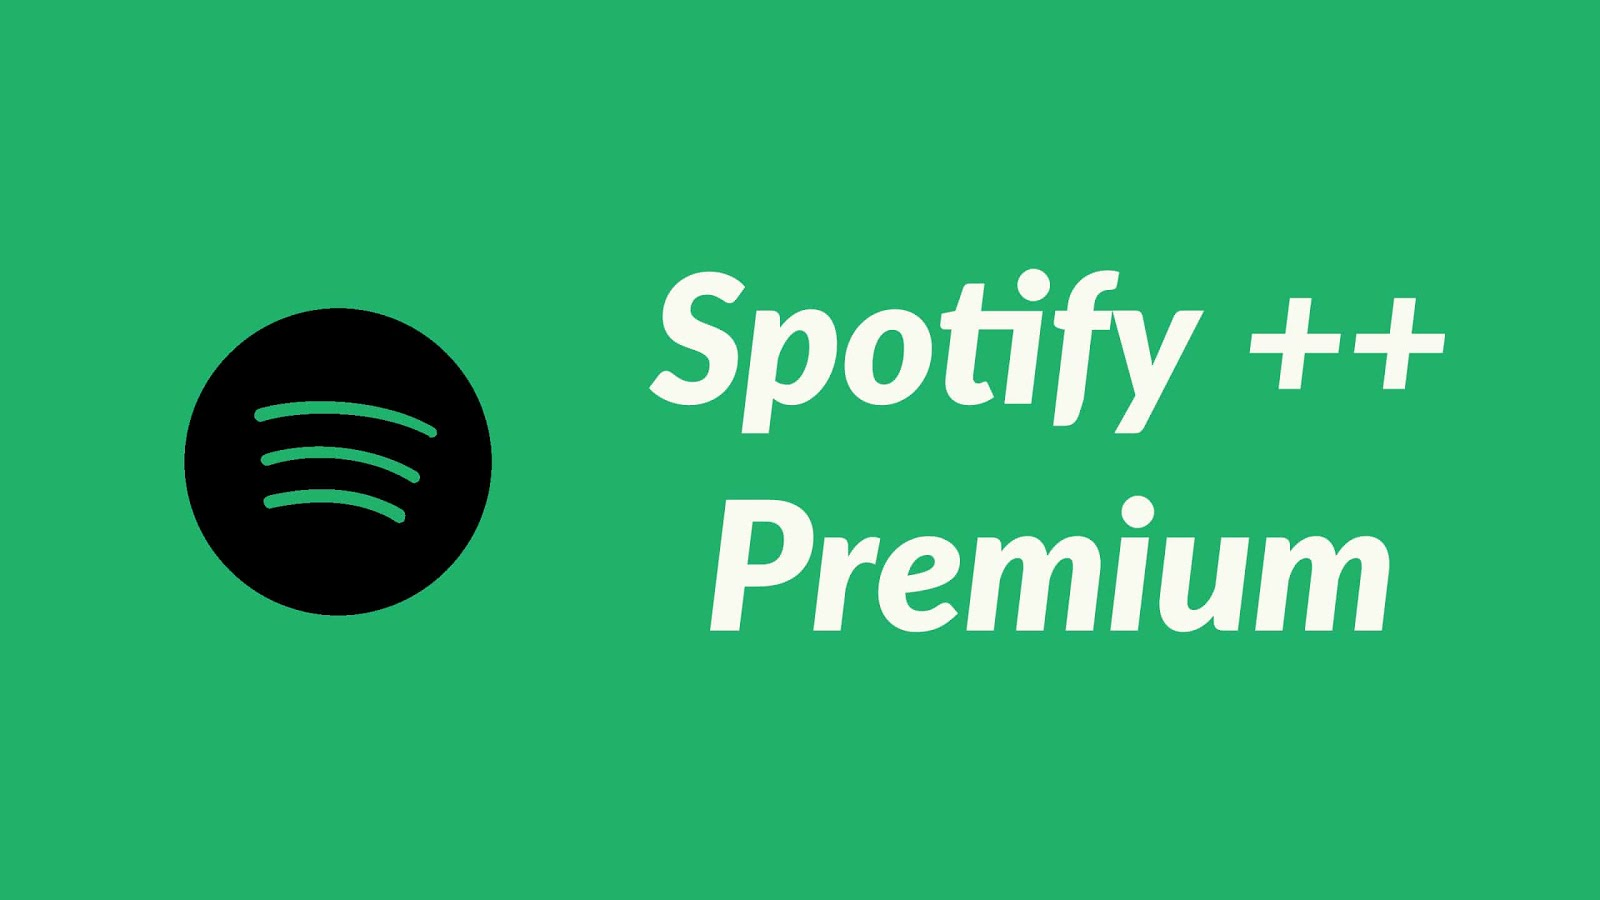 In this post, you will learn on how to download Spotify ++ premium on iOS 10 – 11 for free using Safari Browser. Also your iPhone doesn't even have to be jailbroken or require computer to do so.